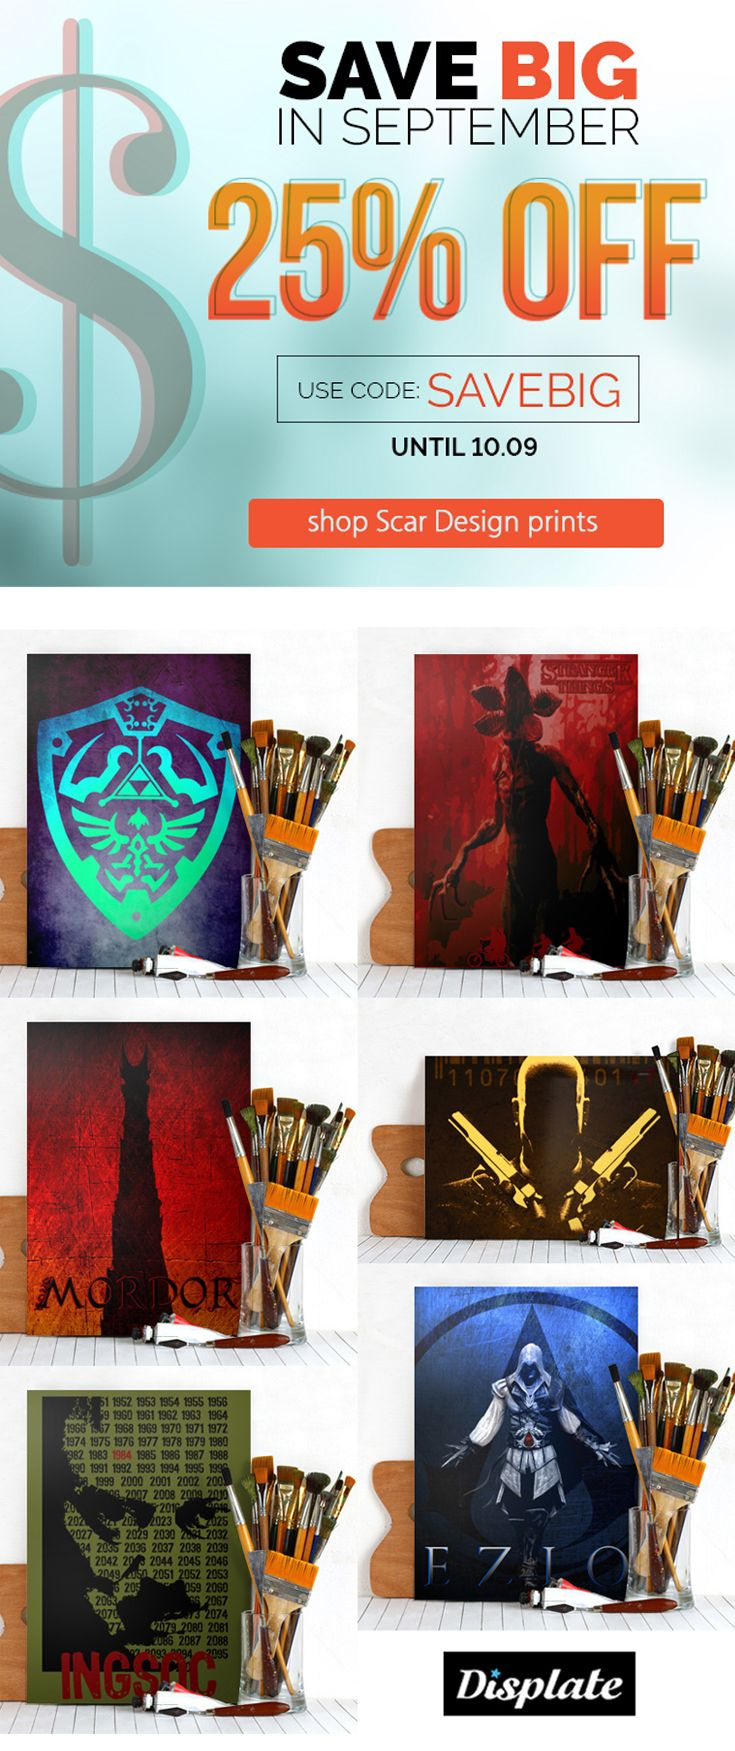 25% OFF Movie, TV  & Gaming Posters TODAY ONLY !! Use code: SAVEBIG #discount #sales #movieposters #gamingposters #save #gifts #hitmanposter #displate #assassinscreedposter #mordorposter #1984poster #zeldaposter #strangerthingsposter #gamer #gaming #homedecor